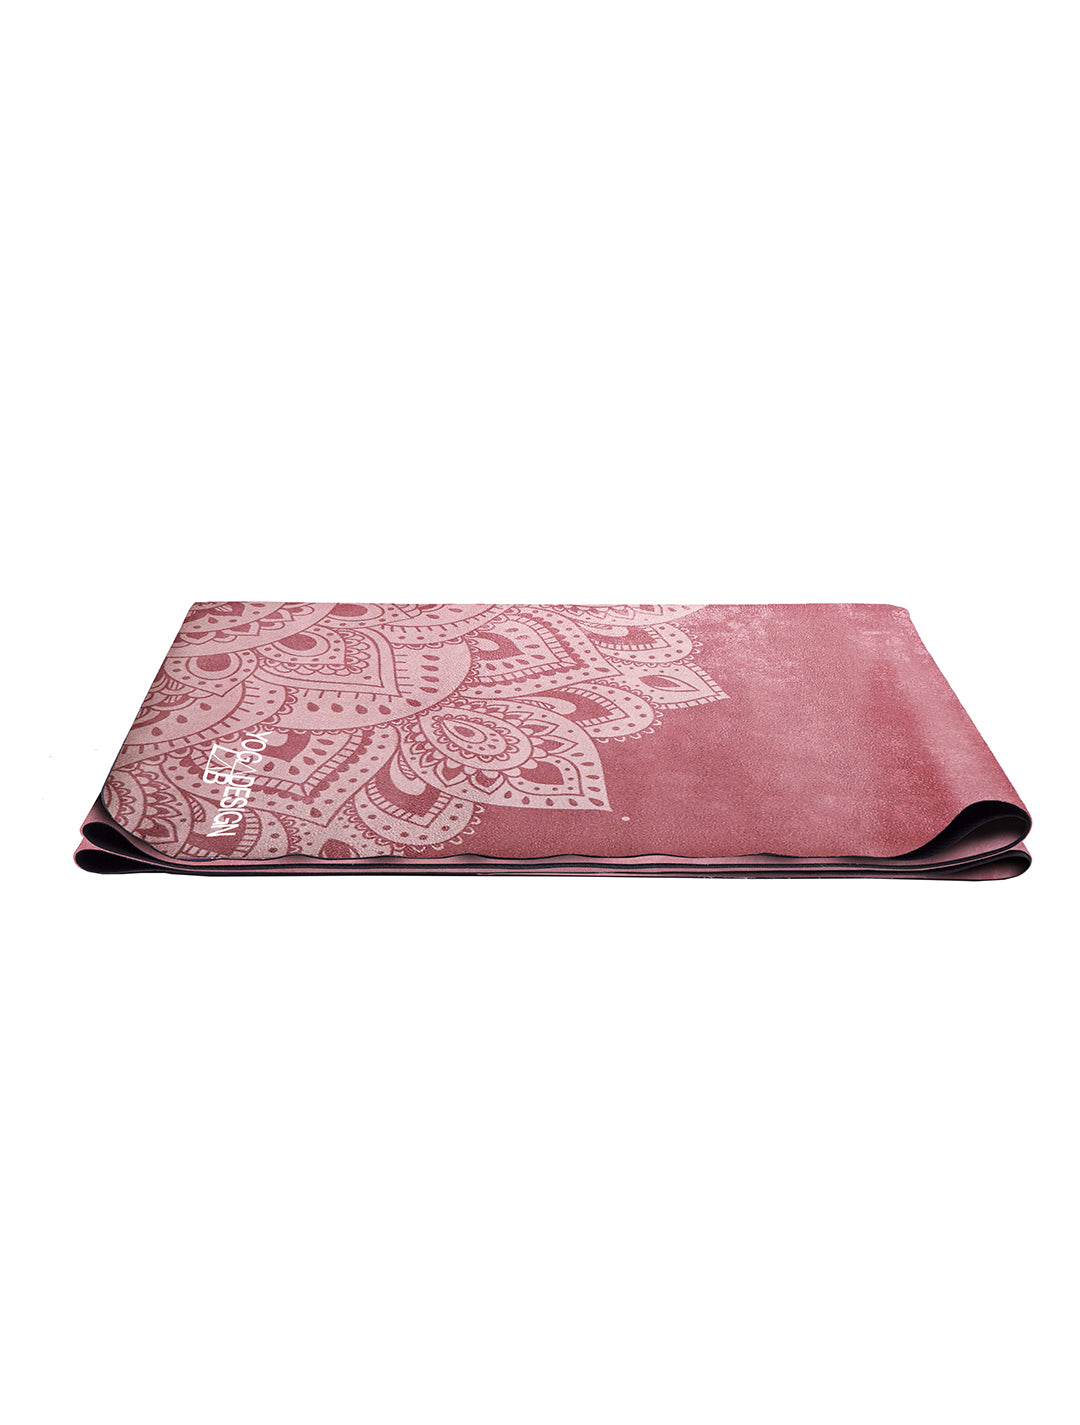 Mandala Ginger Travel Mat by Yoga Design Lab - Psylo Fashion